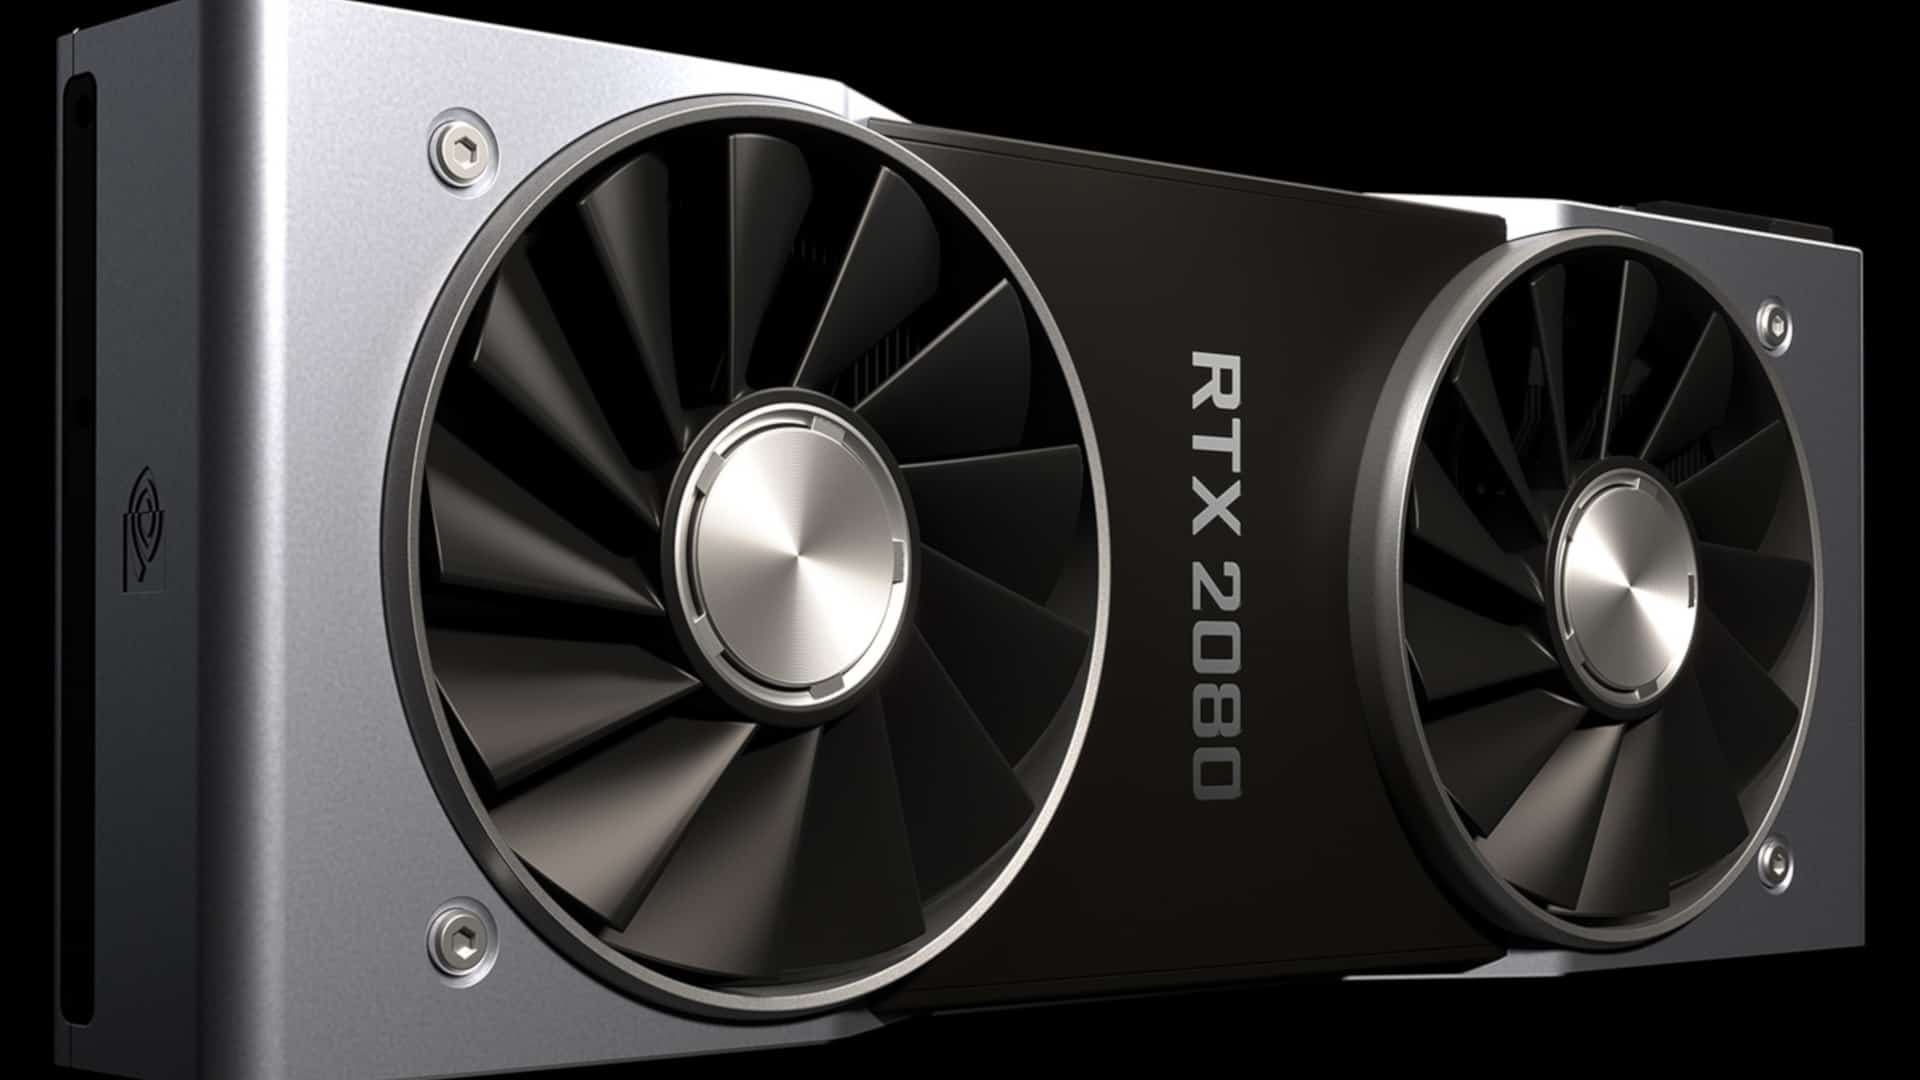 NVIDIA says 'we know you know' about next-gen GeForce RTX